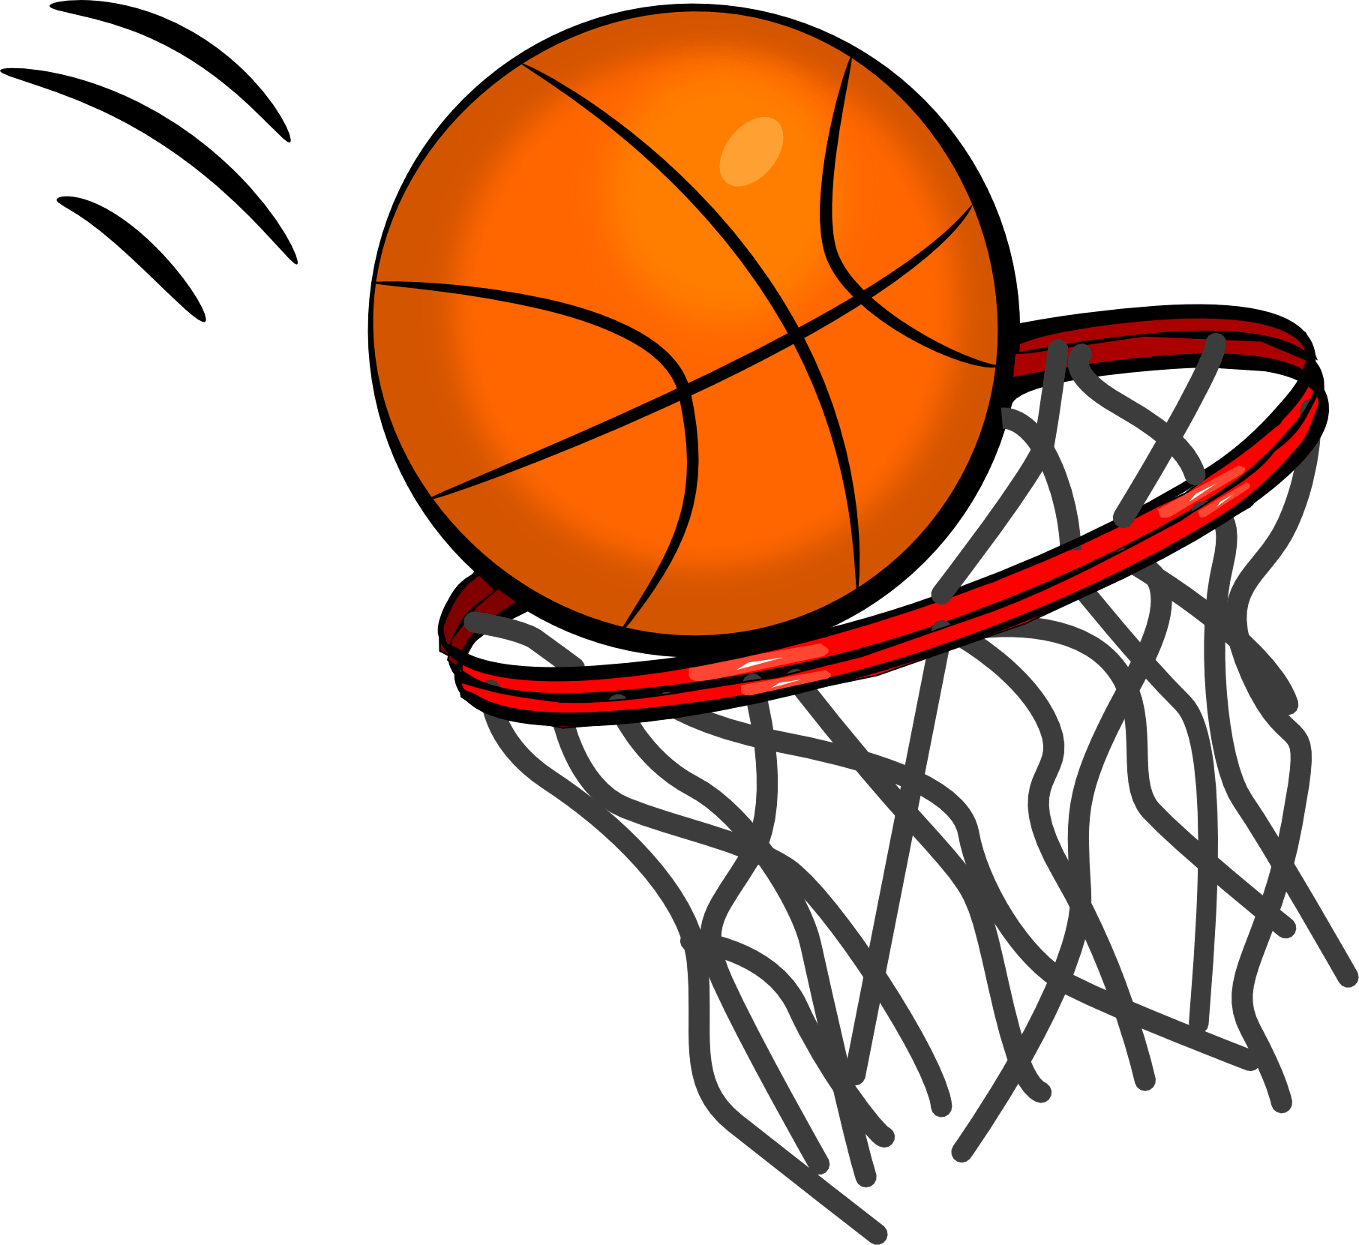 Black and white basketball hoop clipart picture transparent download Gear transparent PNG images - StickPNG picture transparent download